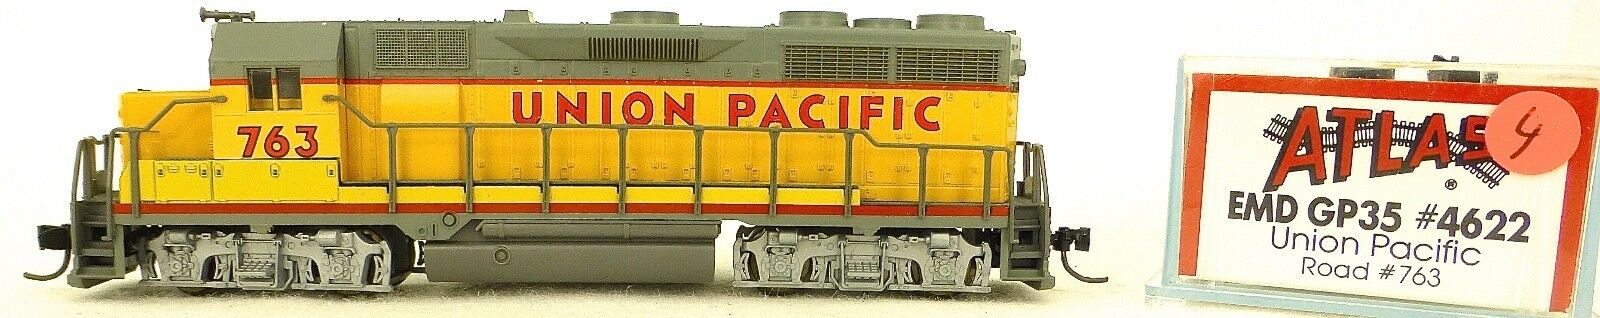 Atlas 4622 Kato EMD gp35 Union Pacific 763 Diesel Locomotive N 1 160 ω04 å